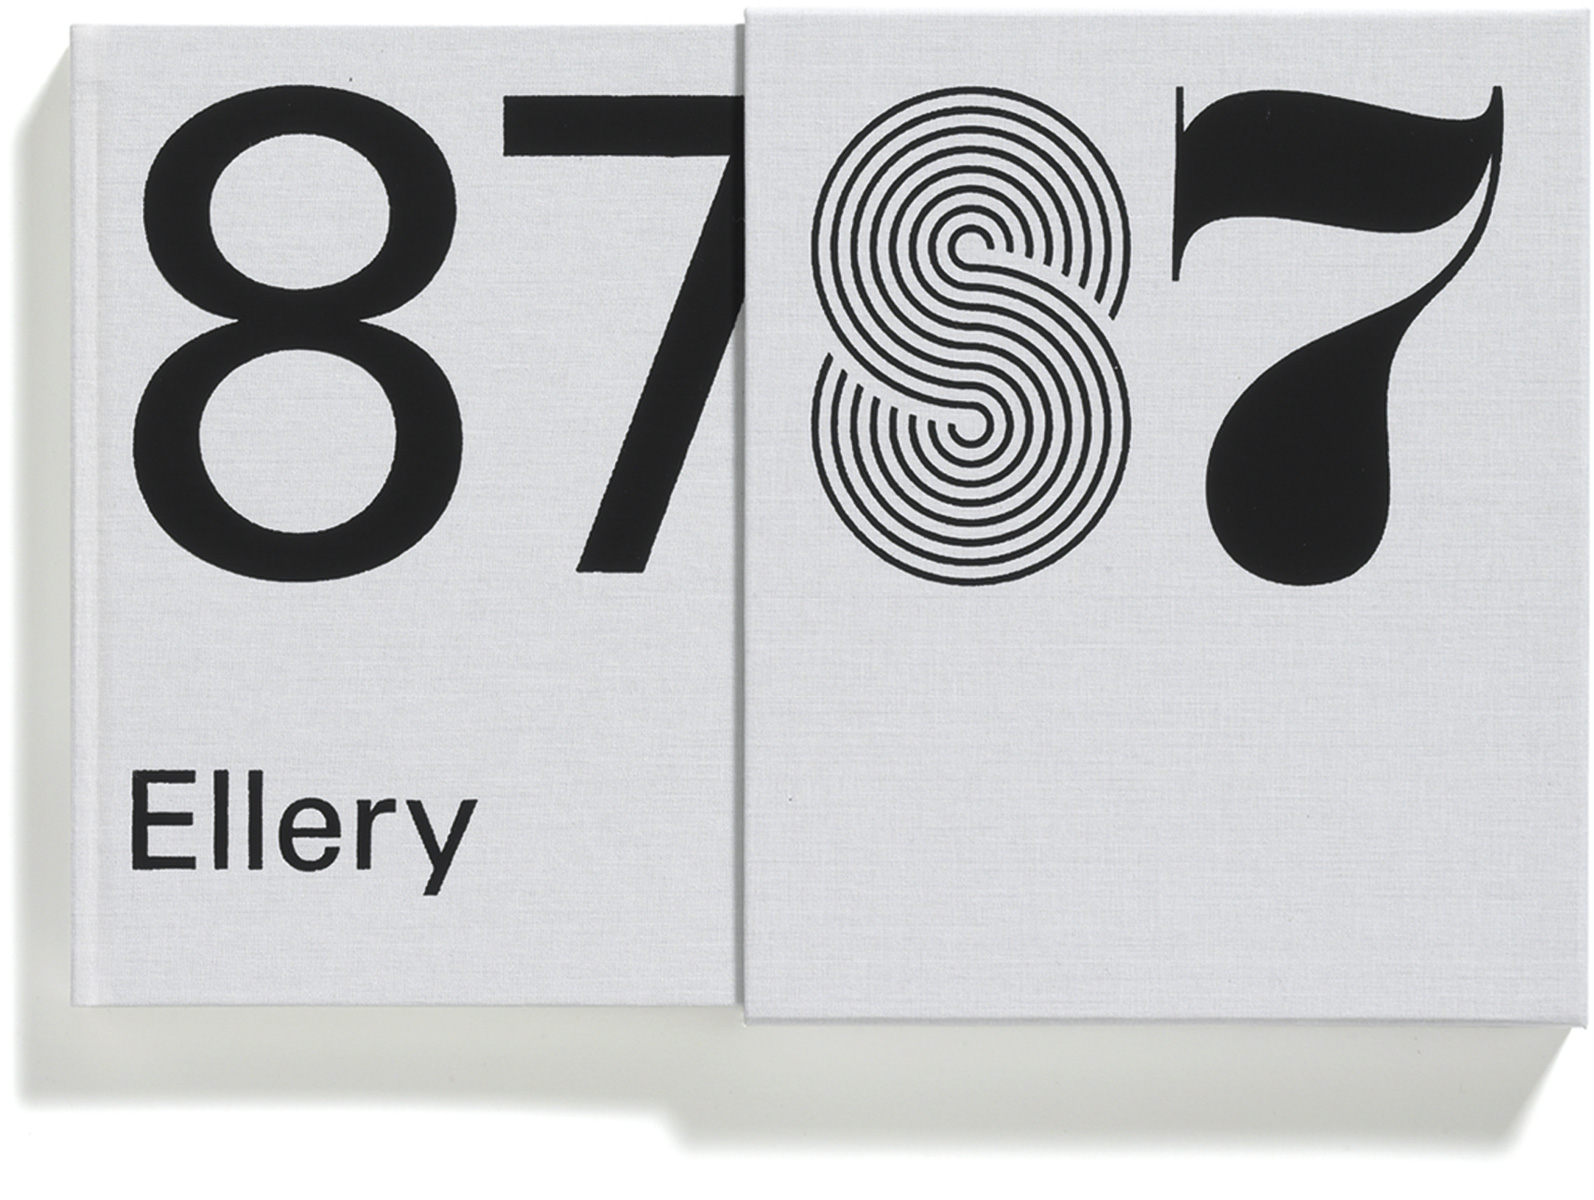 87 Ellery, Jonathan Ellery, Published by Browns Editions, Design by Browns Design, art book, graphic design